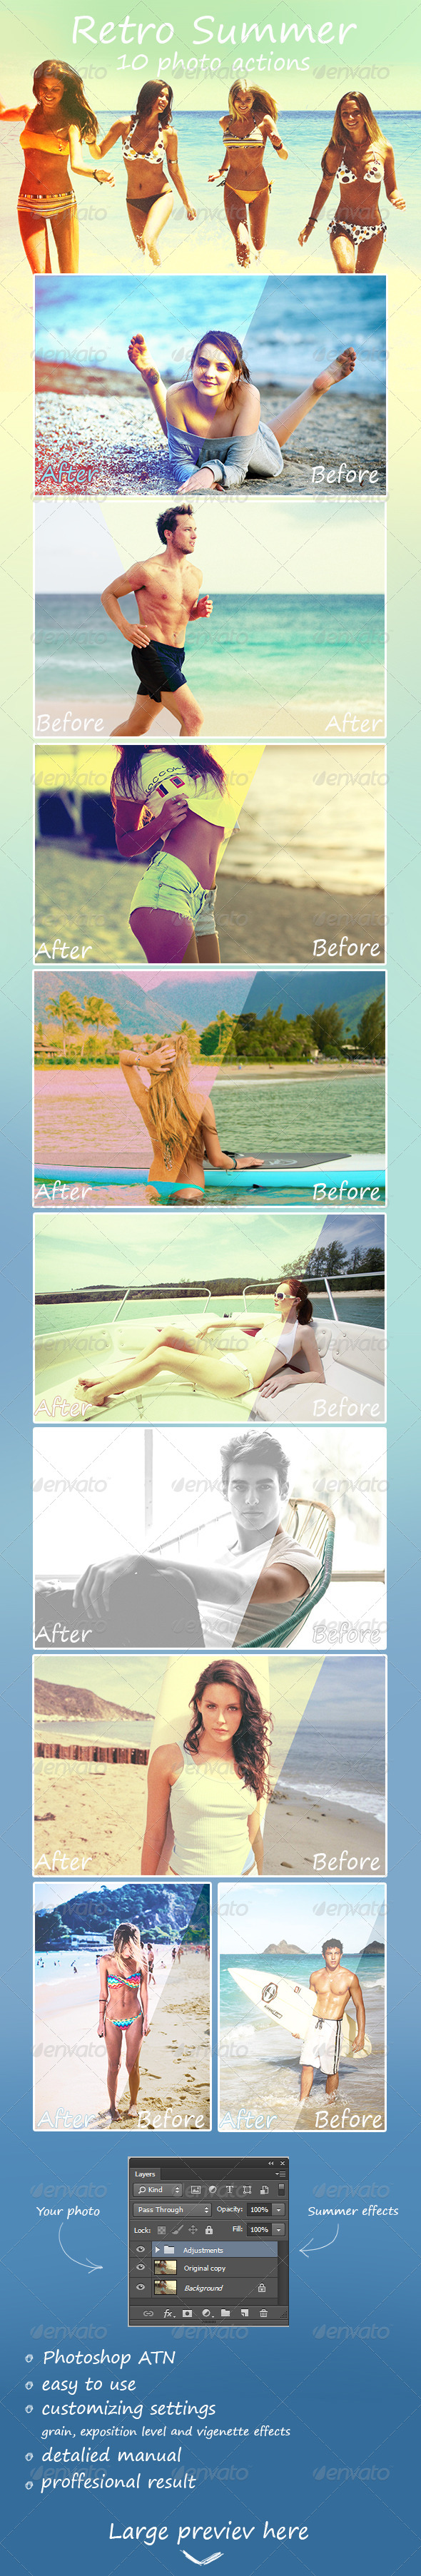 GraphicRiver Retro Summer 10 Photo Actions 8045484